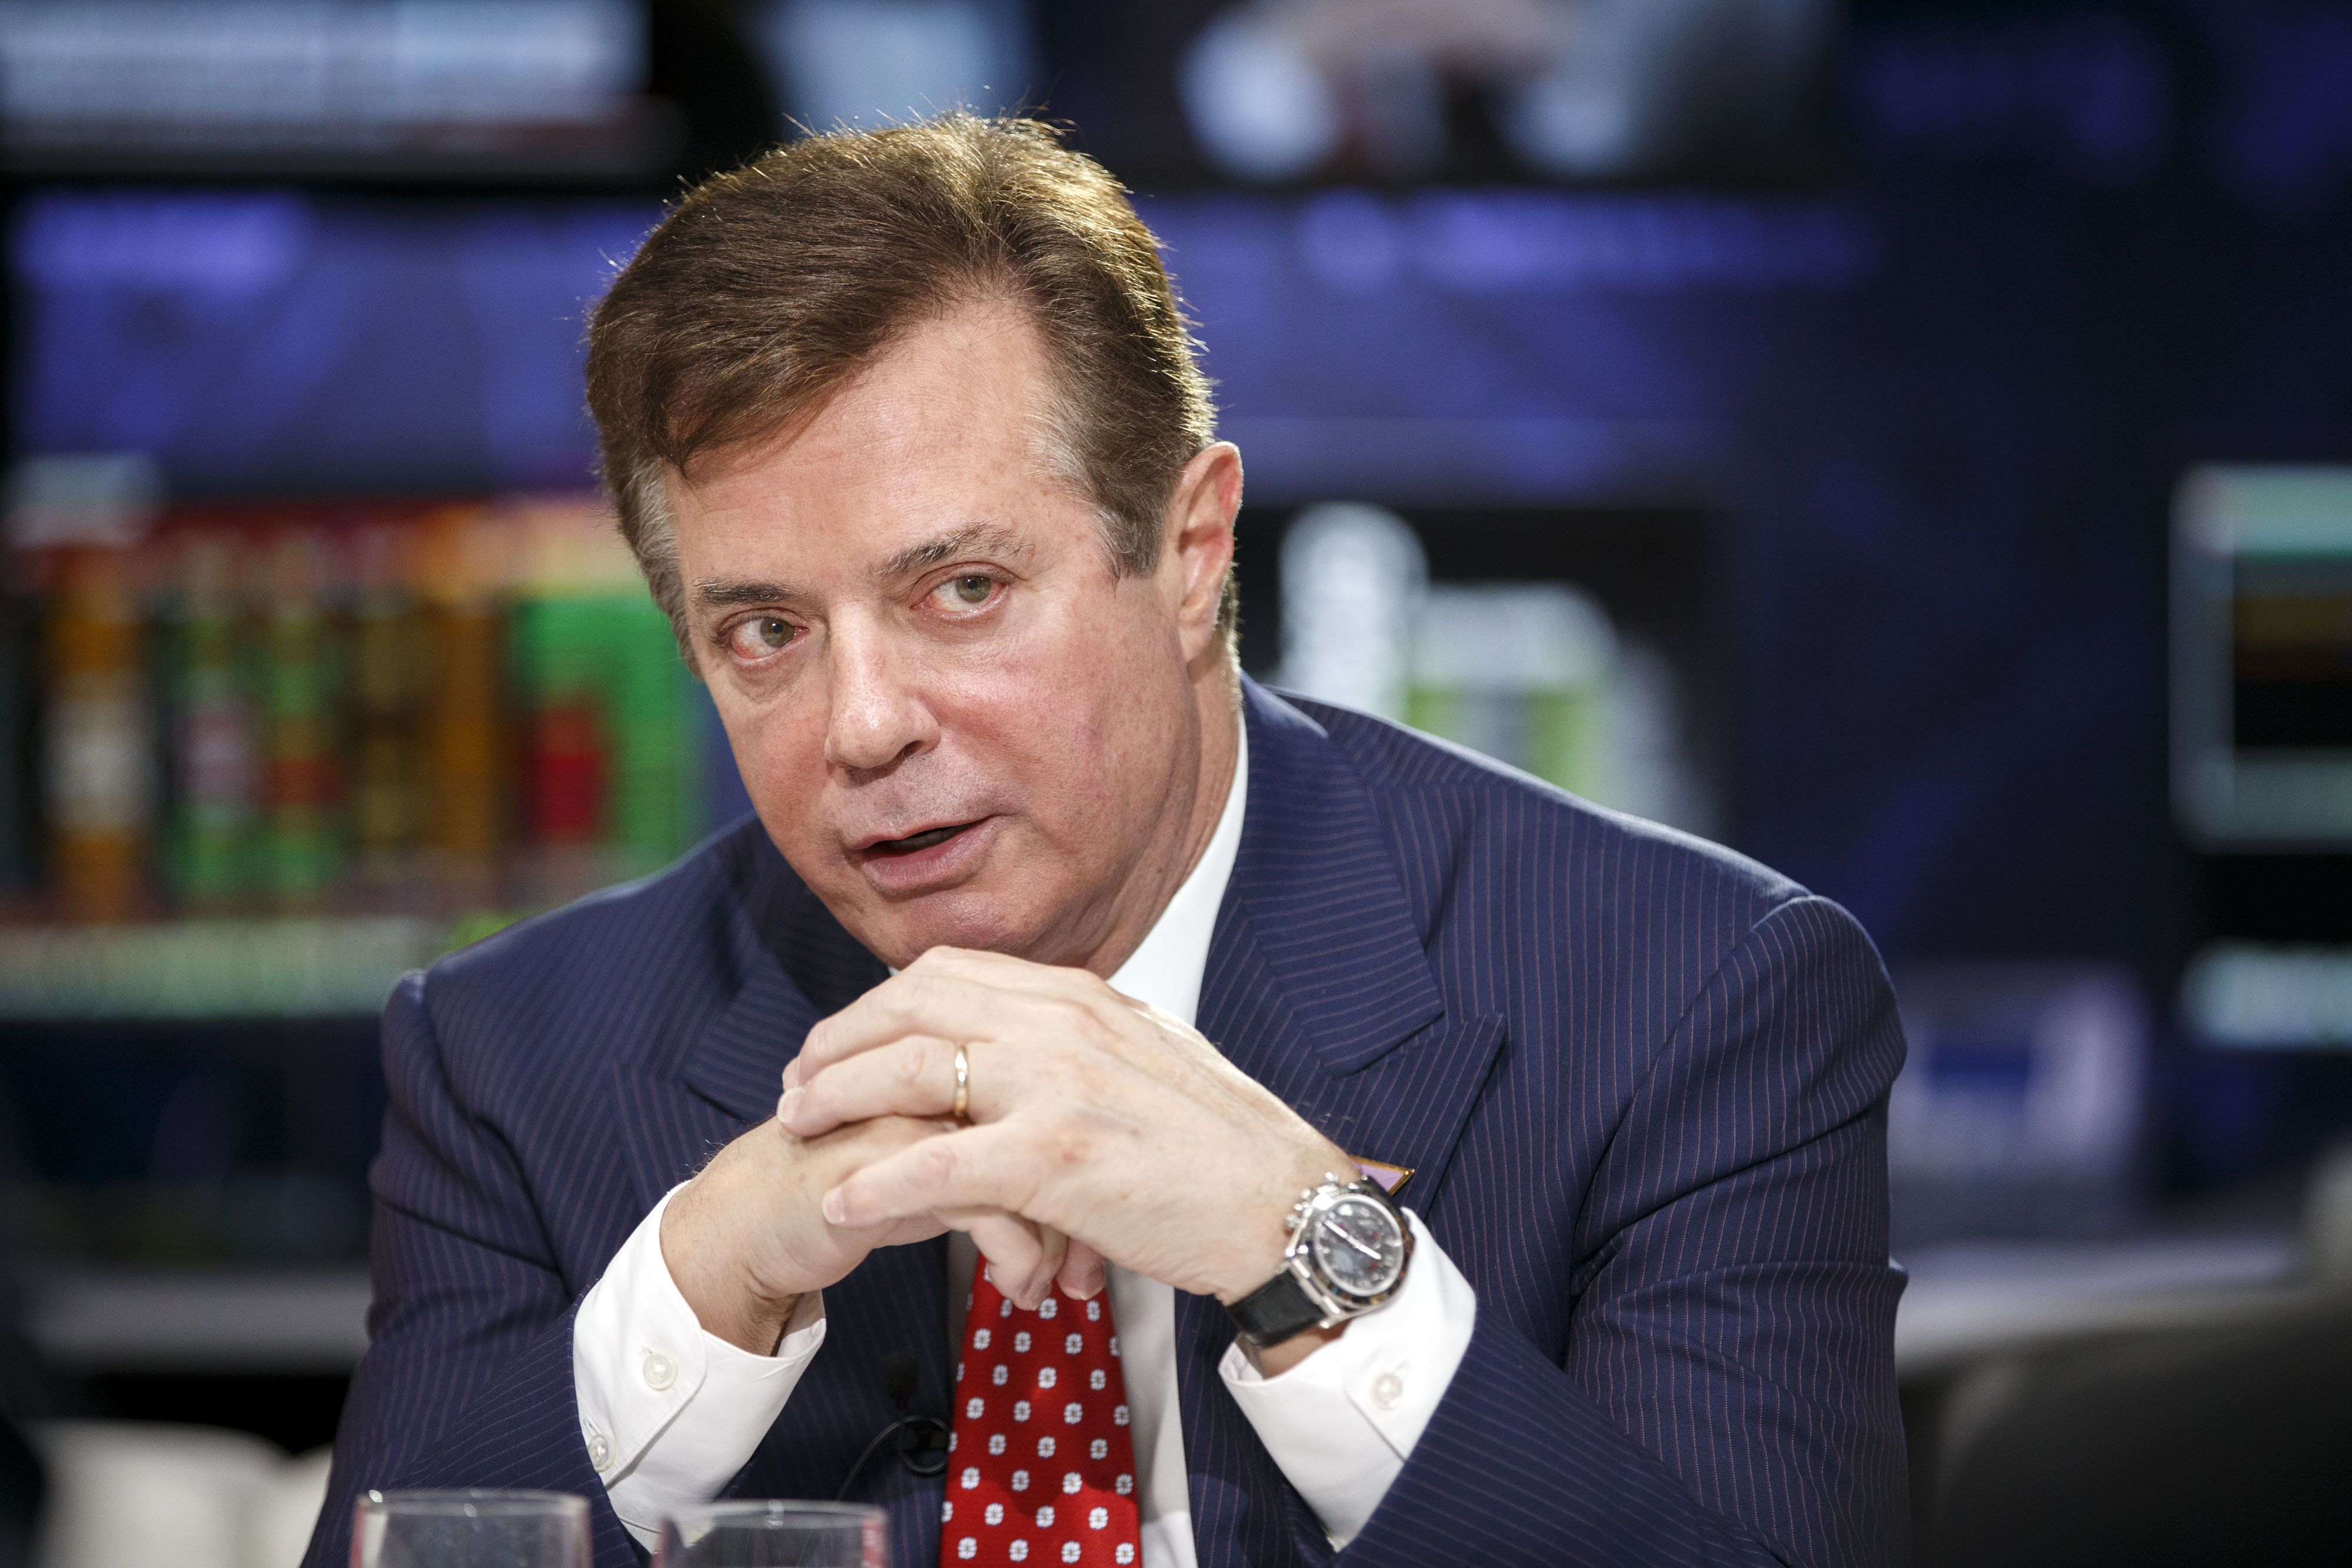 FILE: Paul Manafort, a campaign manager for presumptive 2016 Republican Presidential nominee Donald Trump, speaks during a Bloomberg Politics interview on the sidelines of the Republican National Convention (RNC) in Cleveland, Ohio, U.S., on Monday, July 18, 2016. Manafort, a former campaign manager for President Donald Trump, and his onetime business partner Rick Gates were charged with conspiracy against the U.S., the first people charged in the broad investigation into Russian meddling with the U.S. election. Photographer: Patrick Fallon/Bloomberg via Getty Images